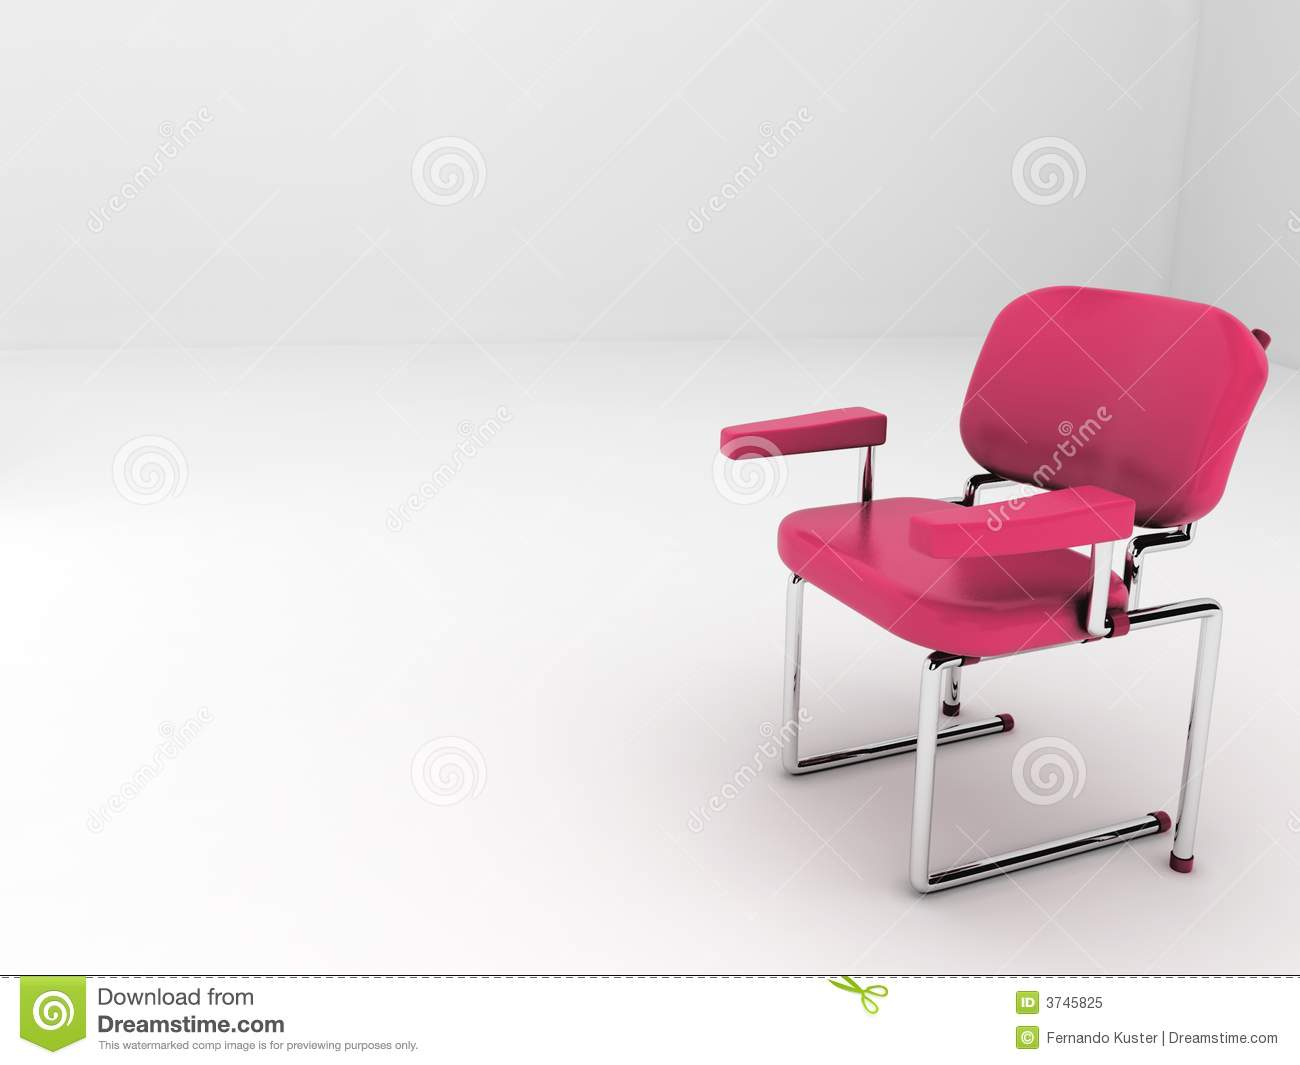 Alone on the red chair